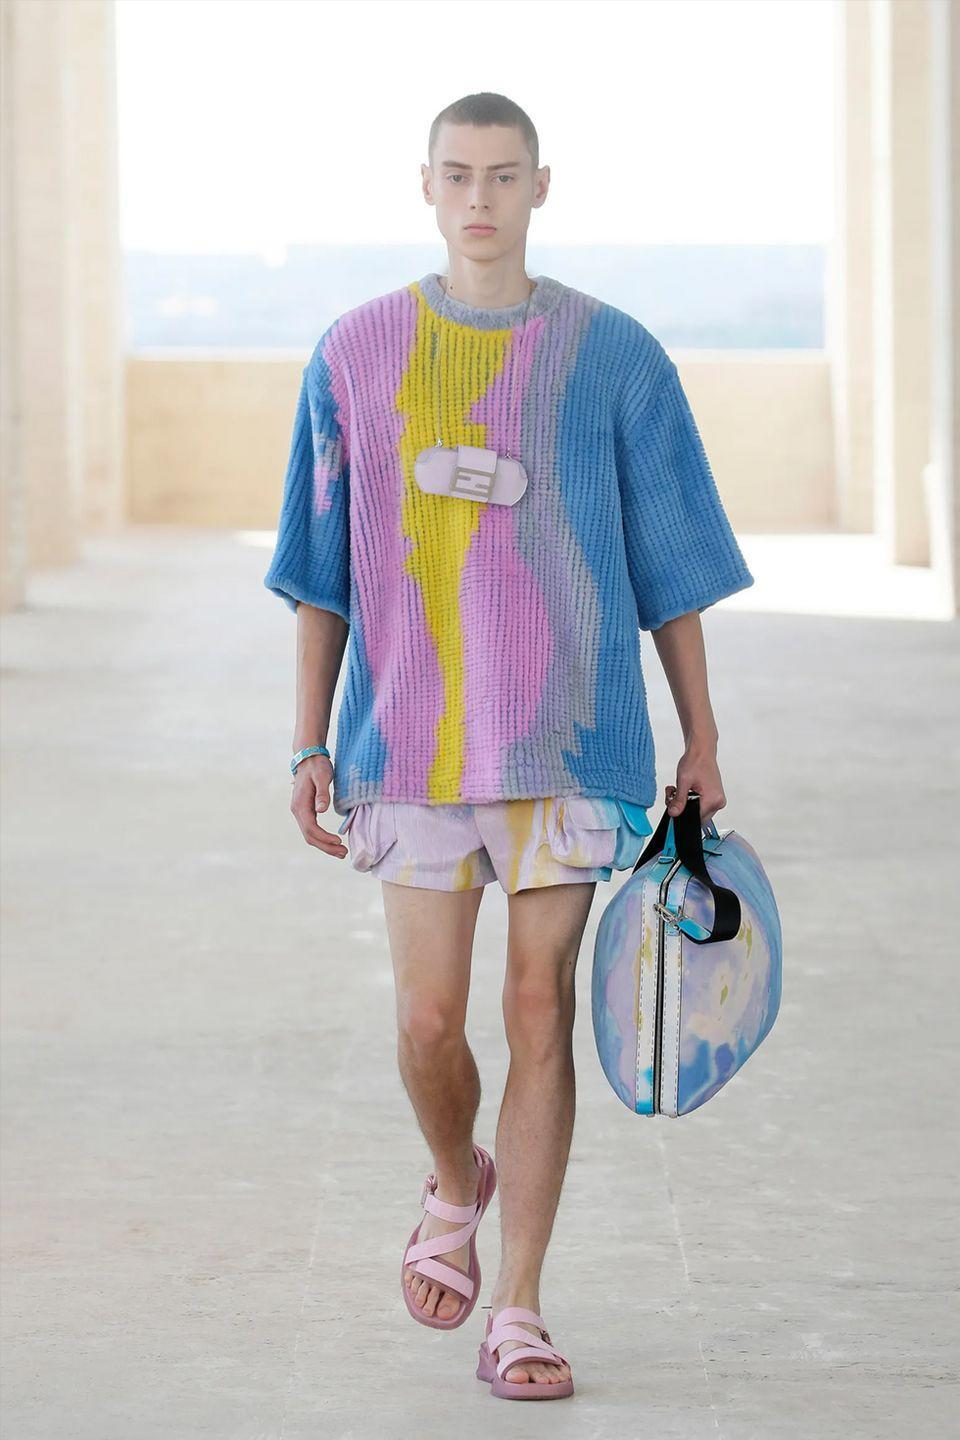 """<p><a href=""""https://www.esquire.com/uk/style/a35249880/fendi-men-fw-21/"""" rel=""""nofollow noopener"""" target=""""_blank"""" data-ylk=""""slk:If last season's Fendi show was the pyjama party"""" class=""""link rapid-noclick-resp"""">If last season's Fendi show was the pyjama party</a>, the most recent outing was the actual party. But rather than tune into a familiar strain of 2am dark lit, smoking indoors party (y'know the sort: sexy, rippling shirts, hard won summer bods etc), creative director Silvia Venturini Fendi played on the concept of newfound freedoms in figurative and literal ways.</p><p>So that meant motifs inspired by Rome, and TikTok adjacent crop tops, and cargo shorts that fell pruriently short of the golden five inch inseam. It's not the stuff of a cramped, sweaty Hackney Wick club. This is the carefree, permasmiling day party – and they're always so much better anyway. </p><p><strong>MC</strong></p>"""